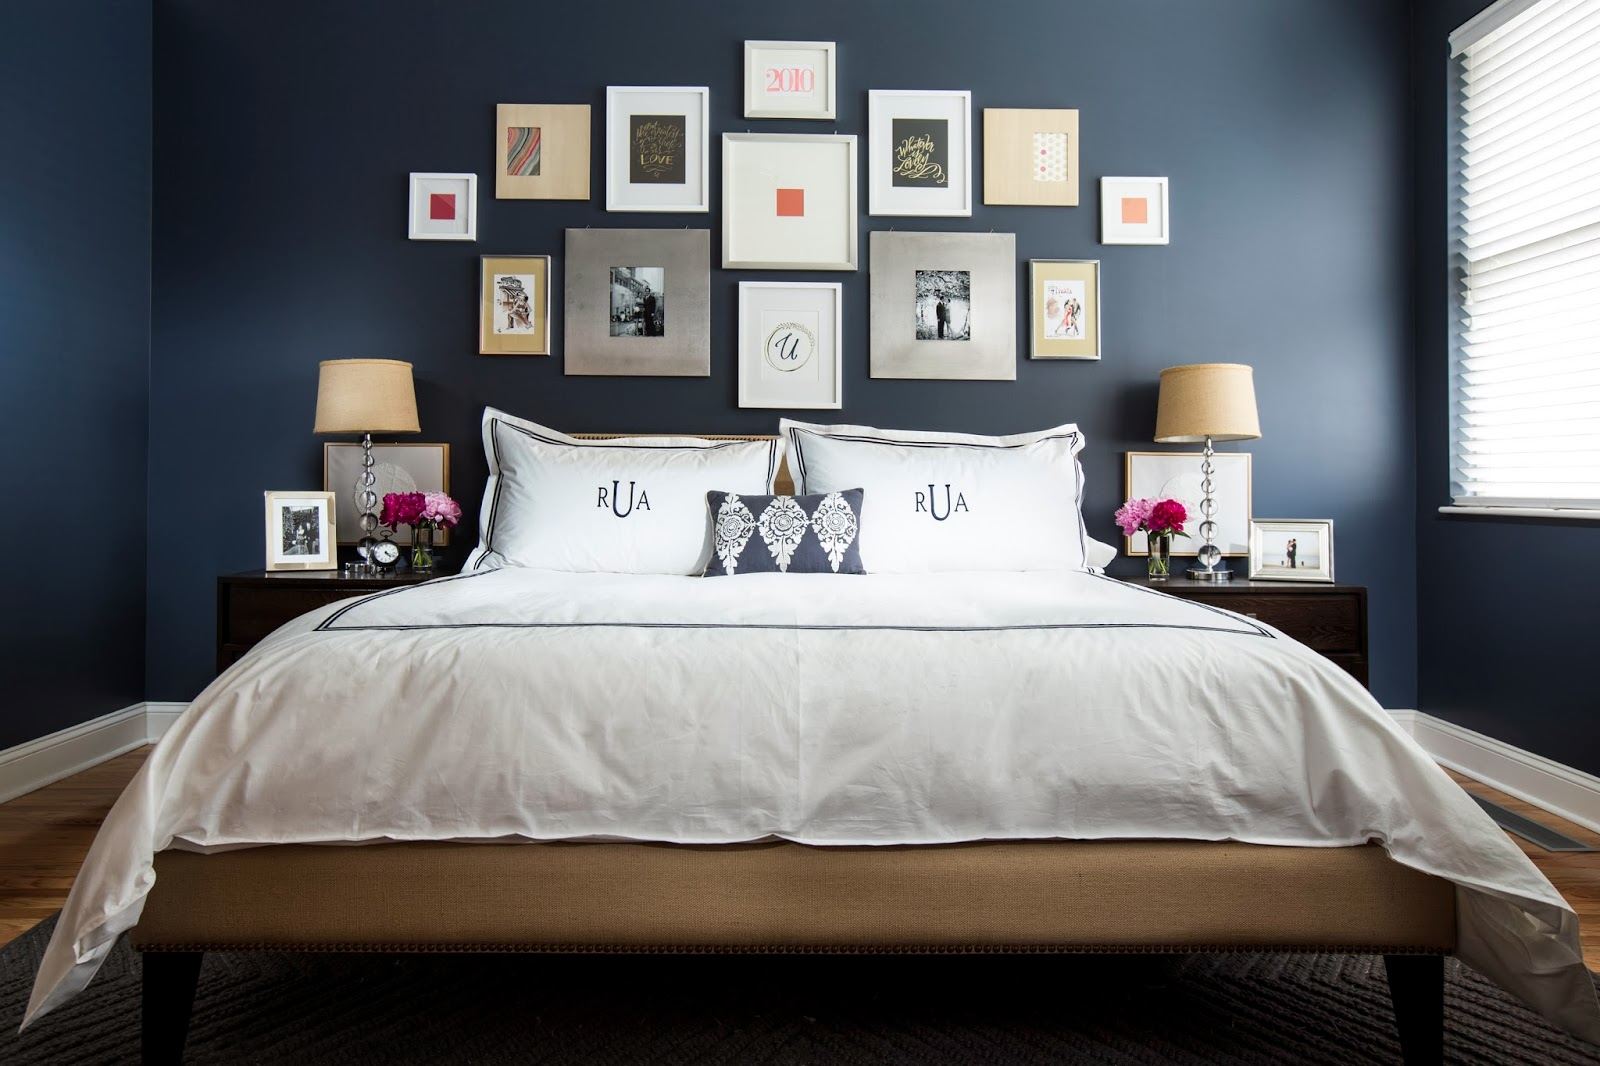 Room Design Ideas For Bedrooms Part - 44: Dark Blue Bedroom Design Decor Ideas With Photo Frame Decoration